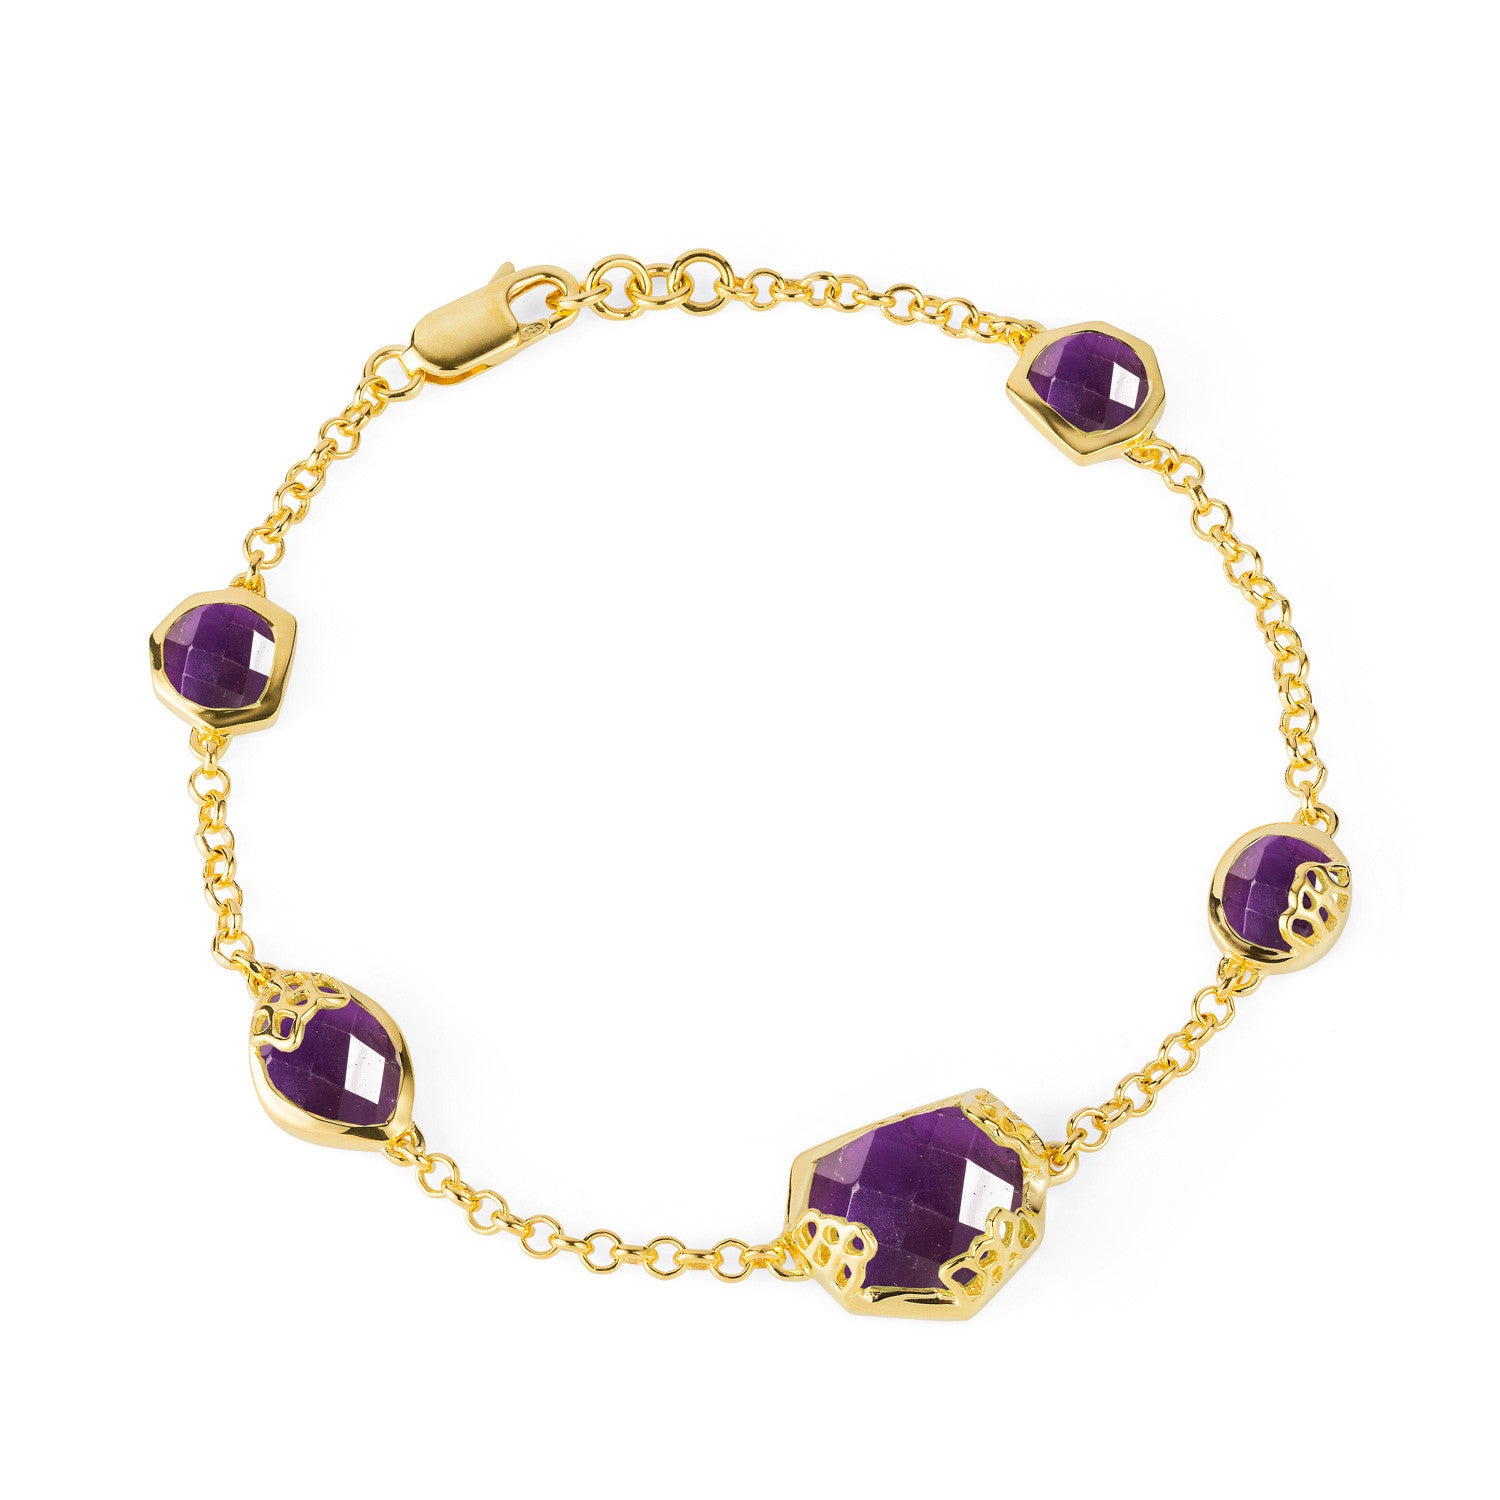 Honeycomb Gold Bracelet with Purple Amethyst